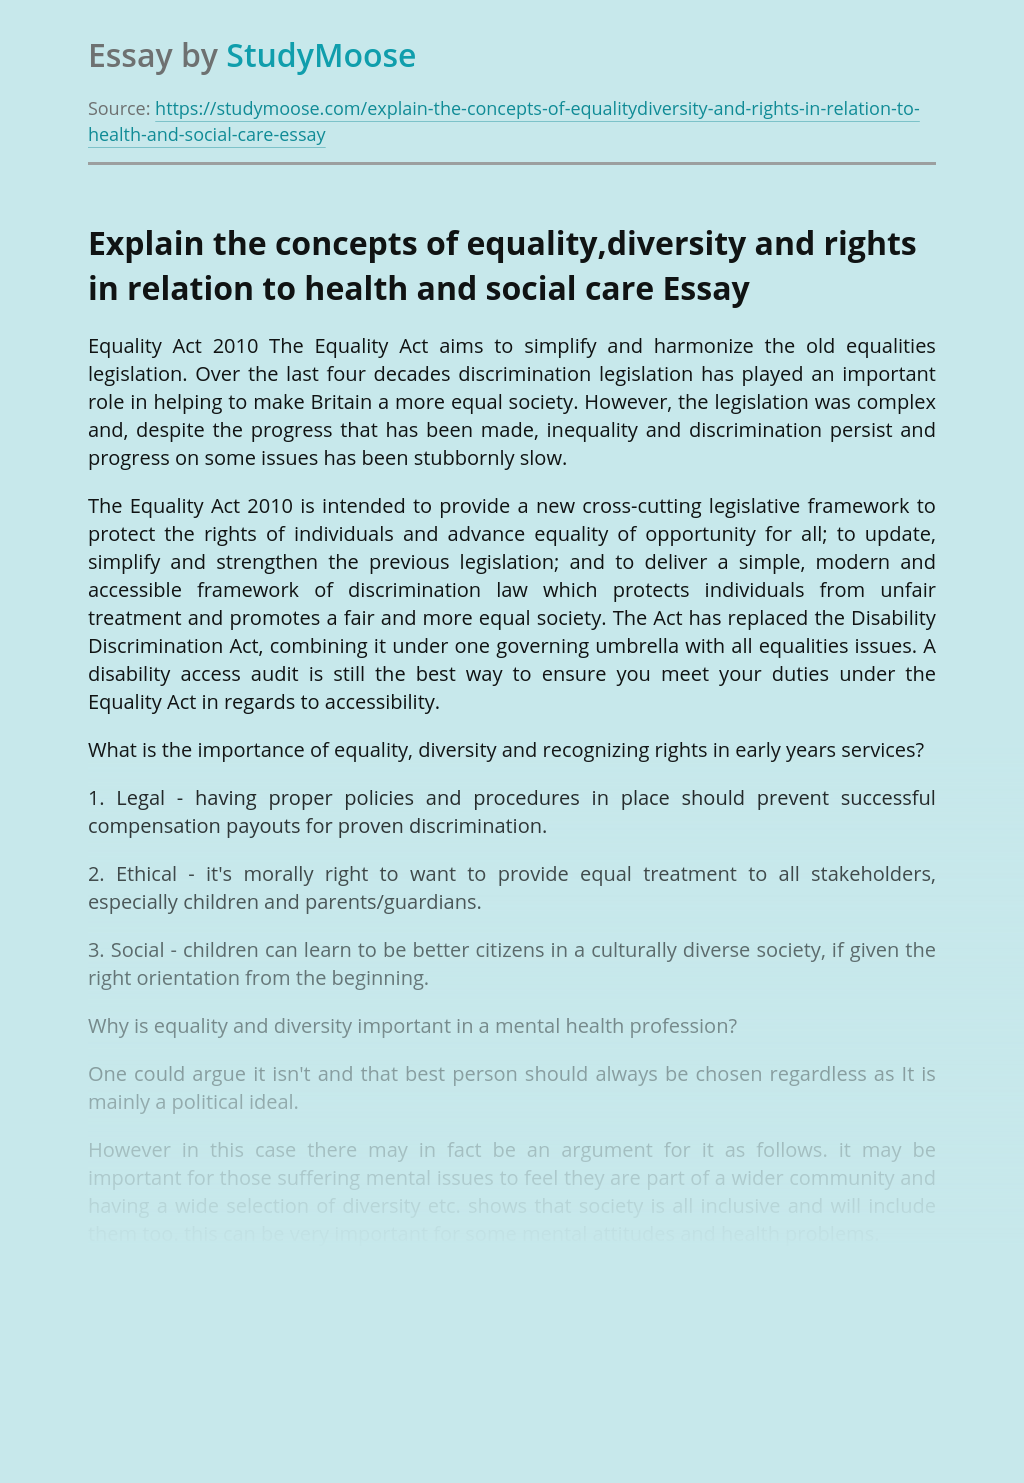 Explain the concepts of equality,diversity and rights in relation to health and social care